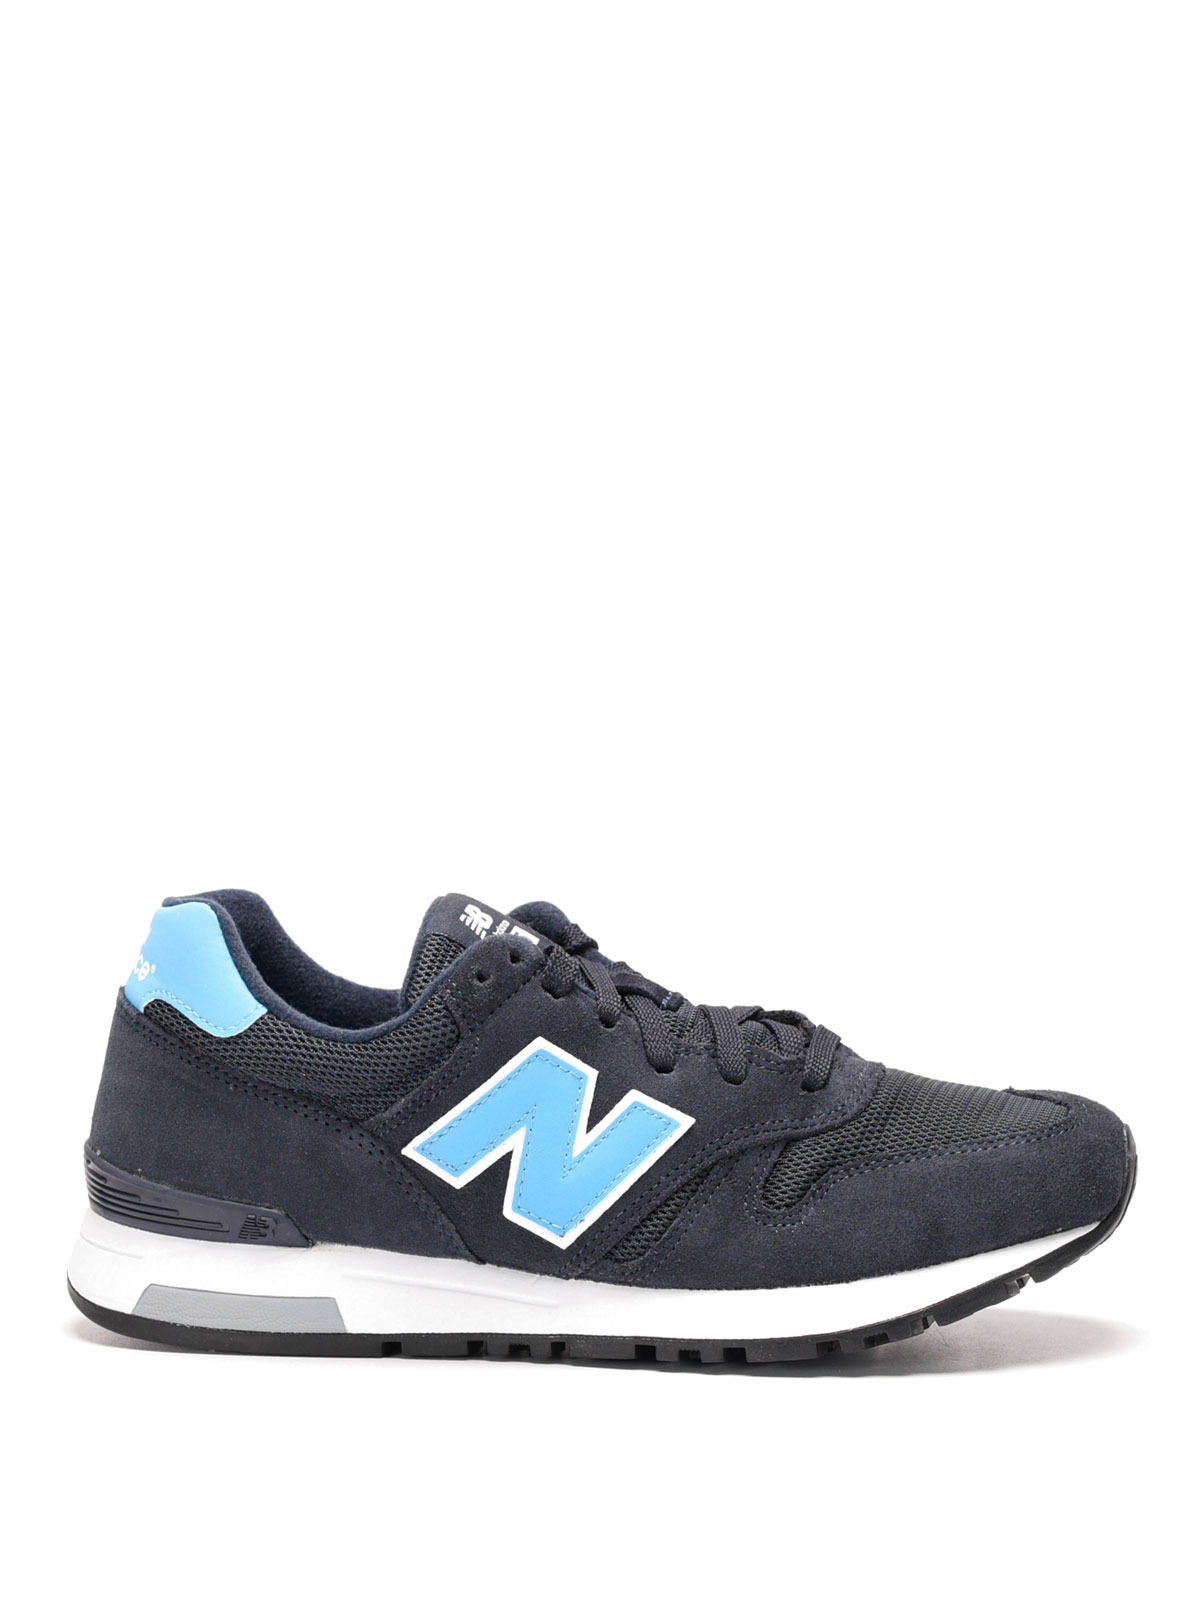 565 suede and techno mesh sneakers by new balance. Black Bedroom Furniture Sets. Home Design Ideas